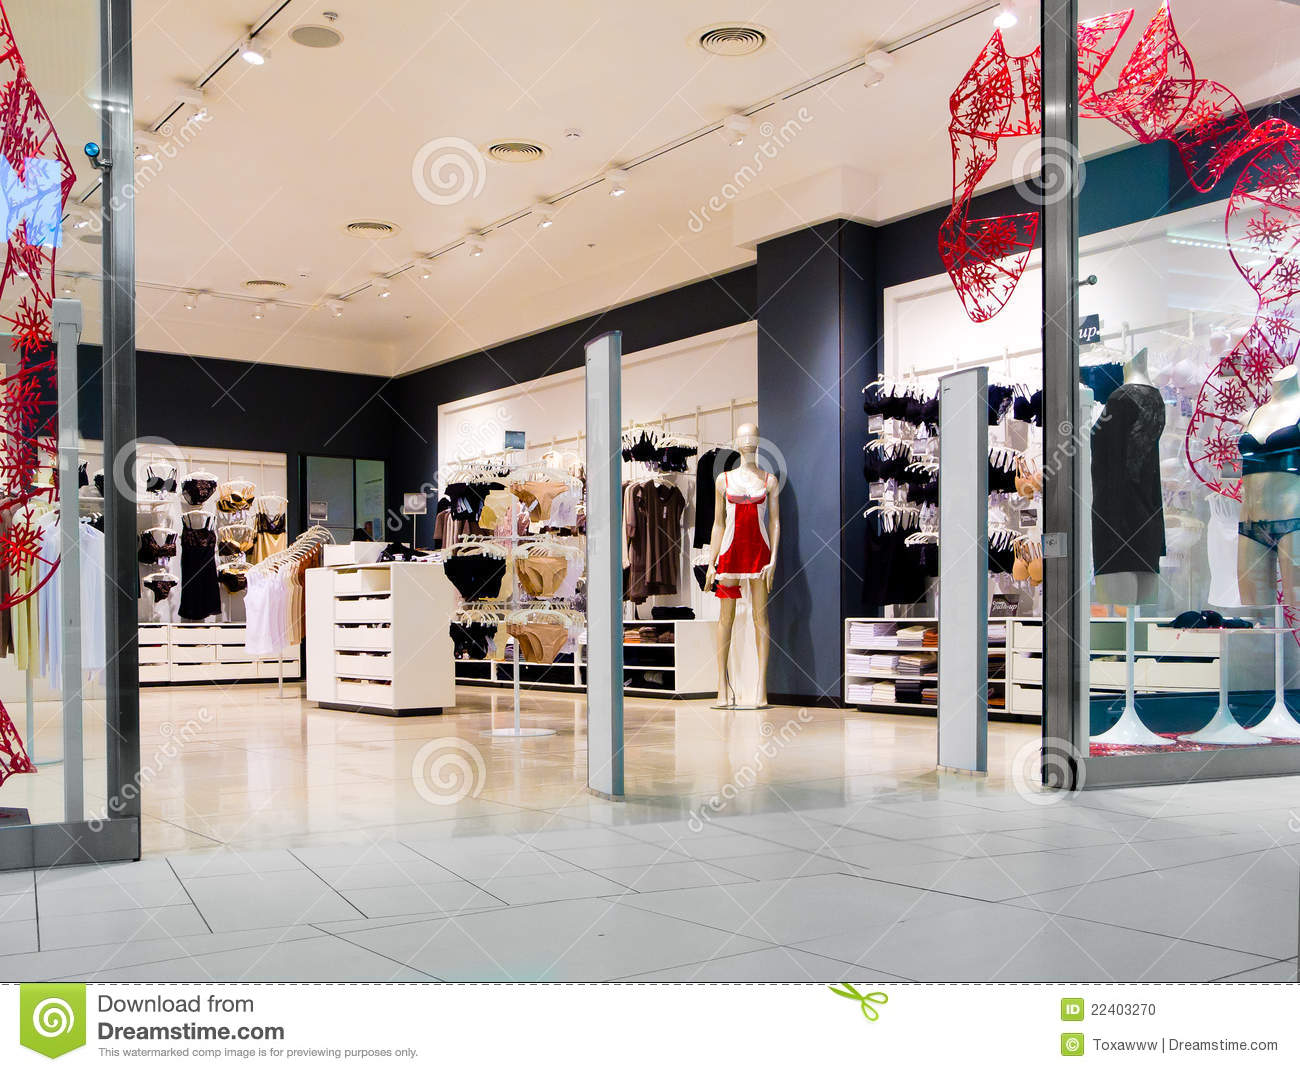 Interior Of Lingerie Shop Stock Photo - Image: 22403270